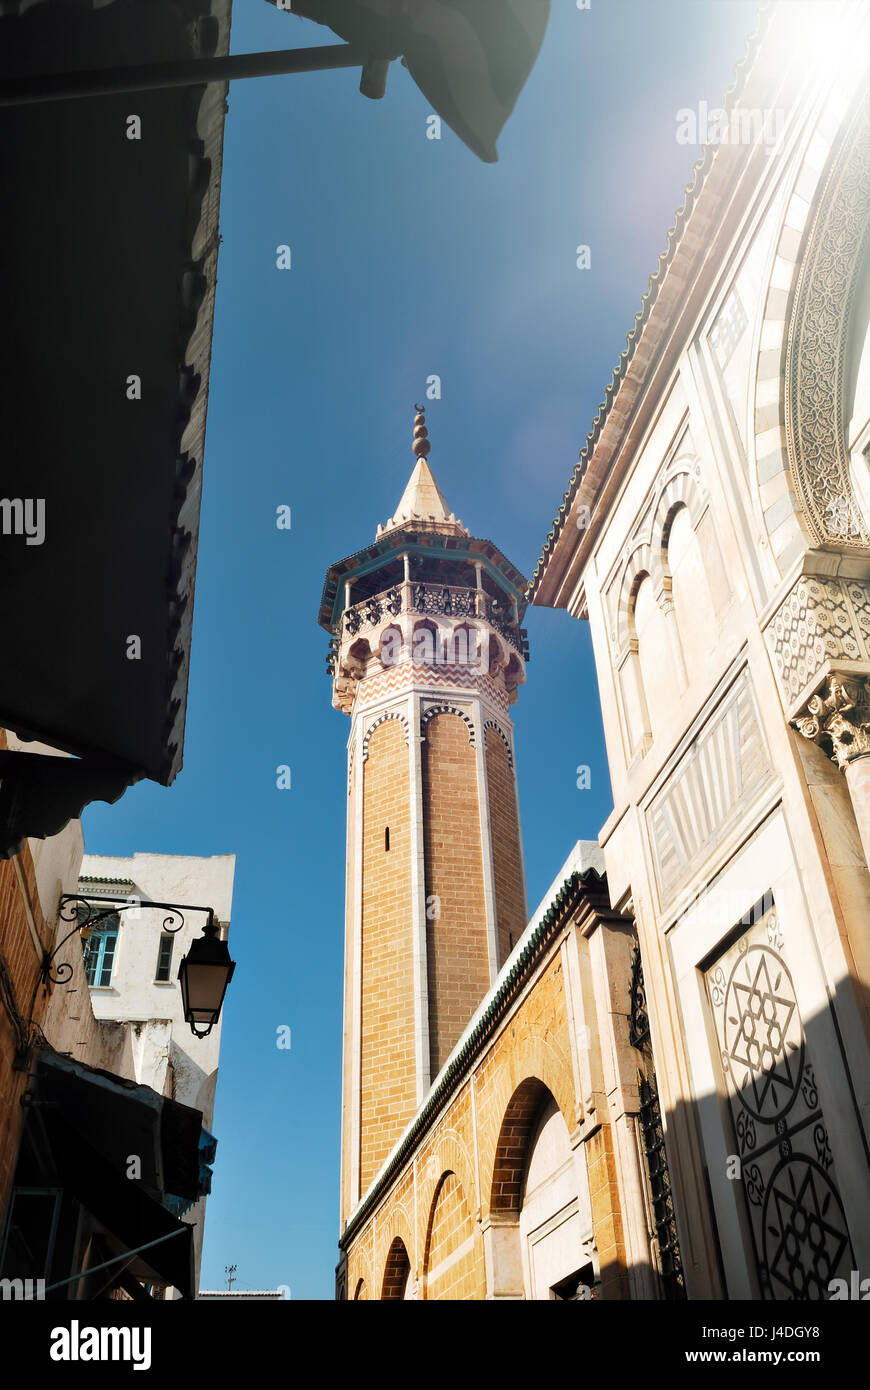 Minaret and the mosque Hammouda Pacha n the Medina of the city of Tunis, in Tunisia, Africa - Stock Image